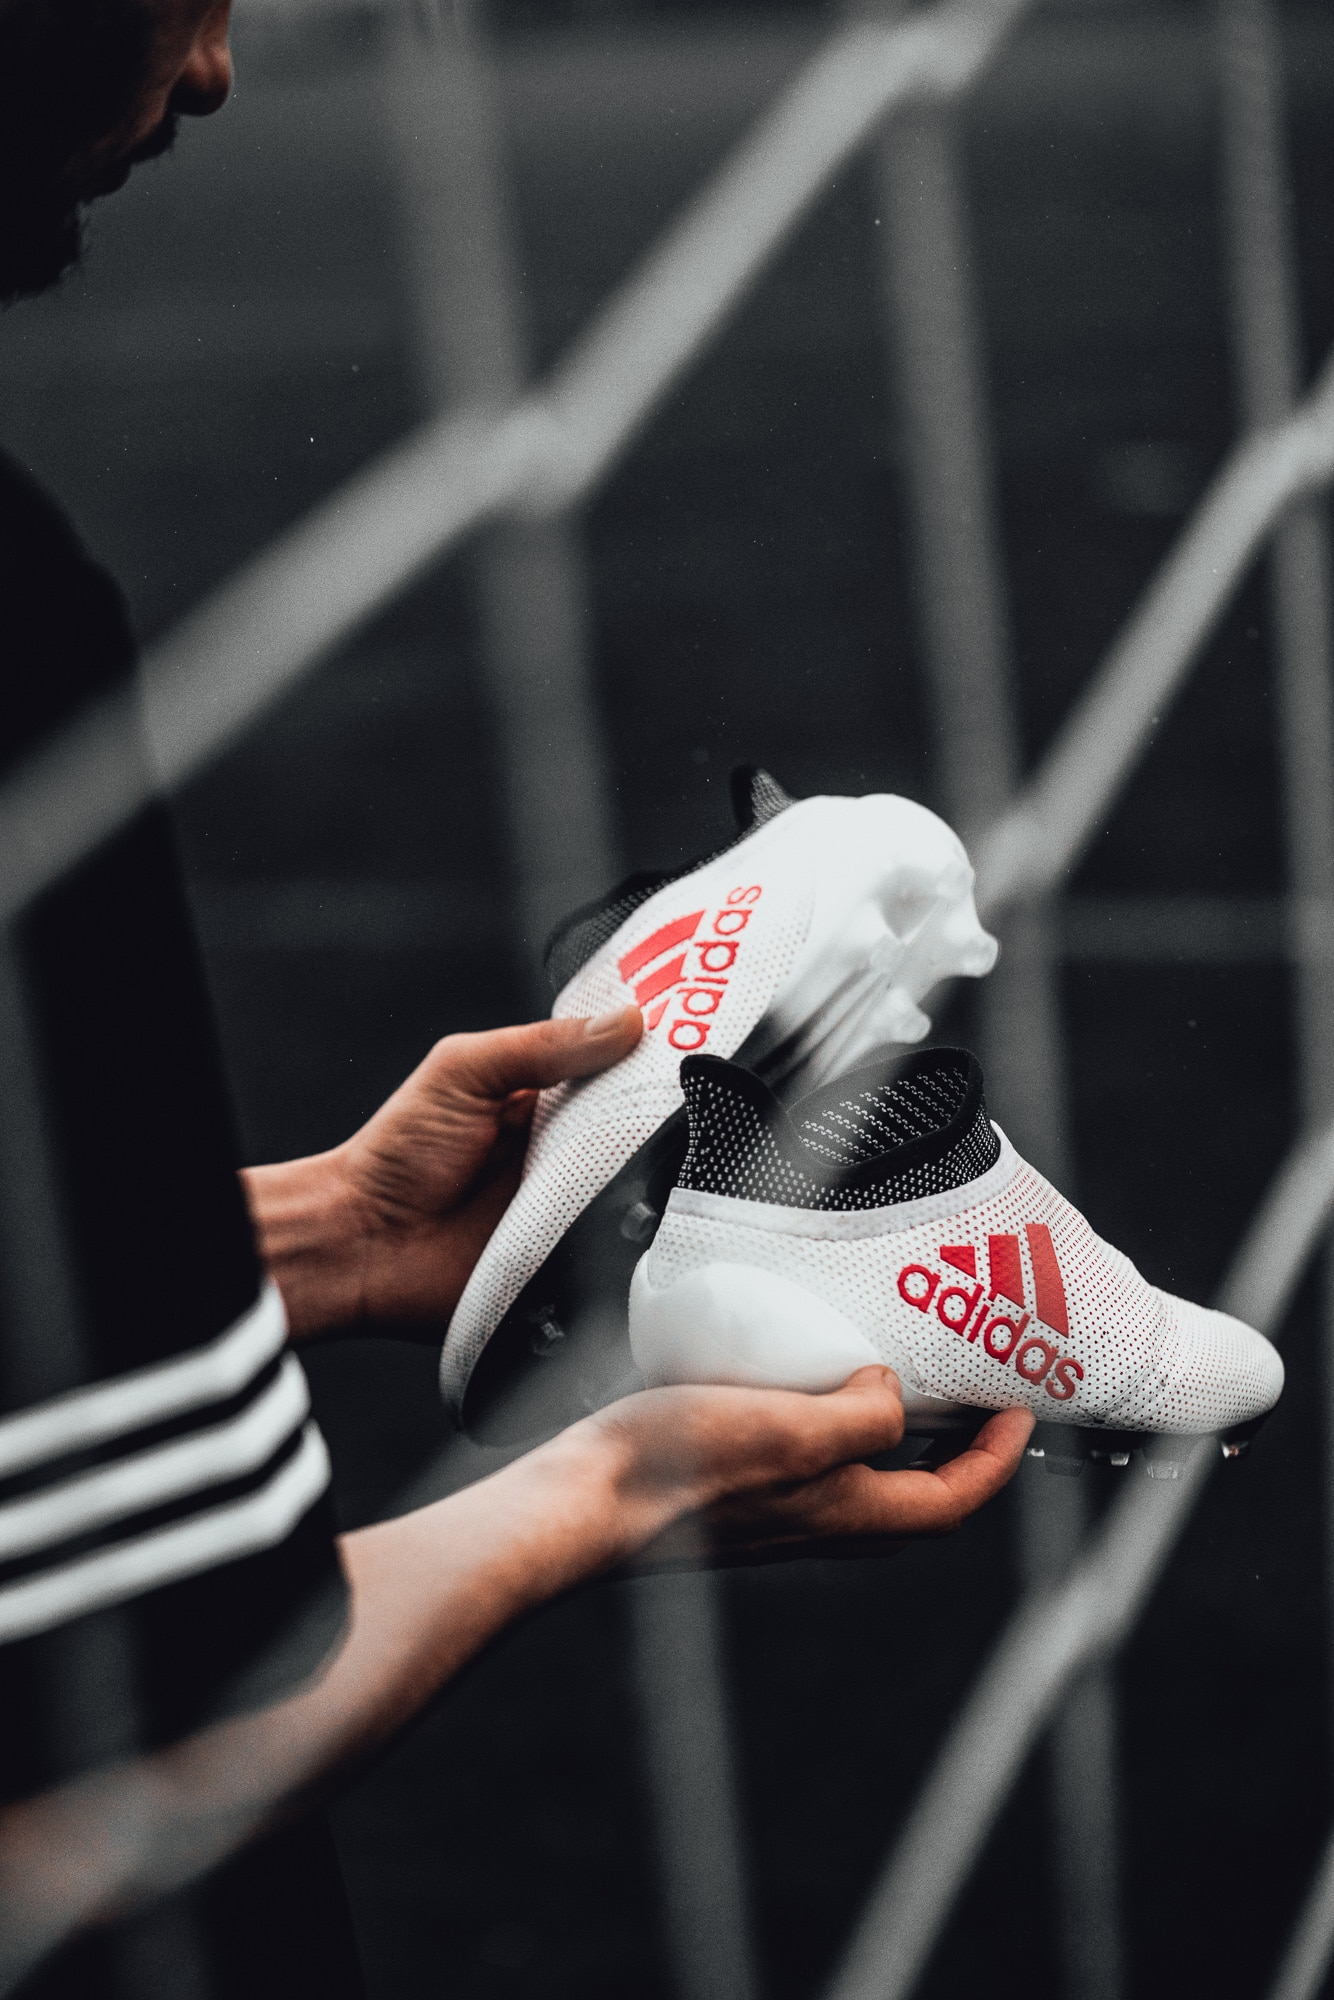 chaussure-football-X17-cold-blooded-janvier-2018-1